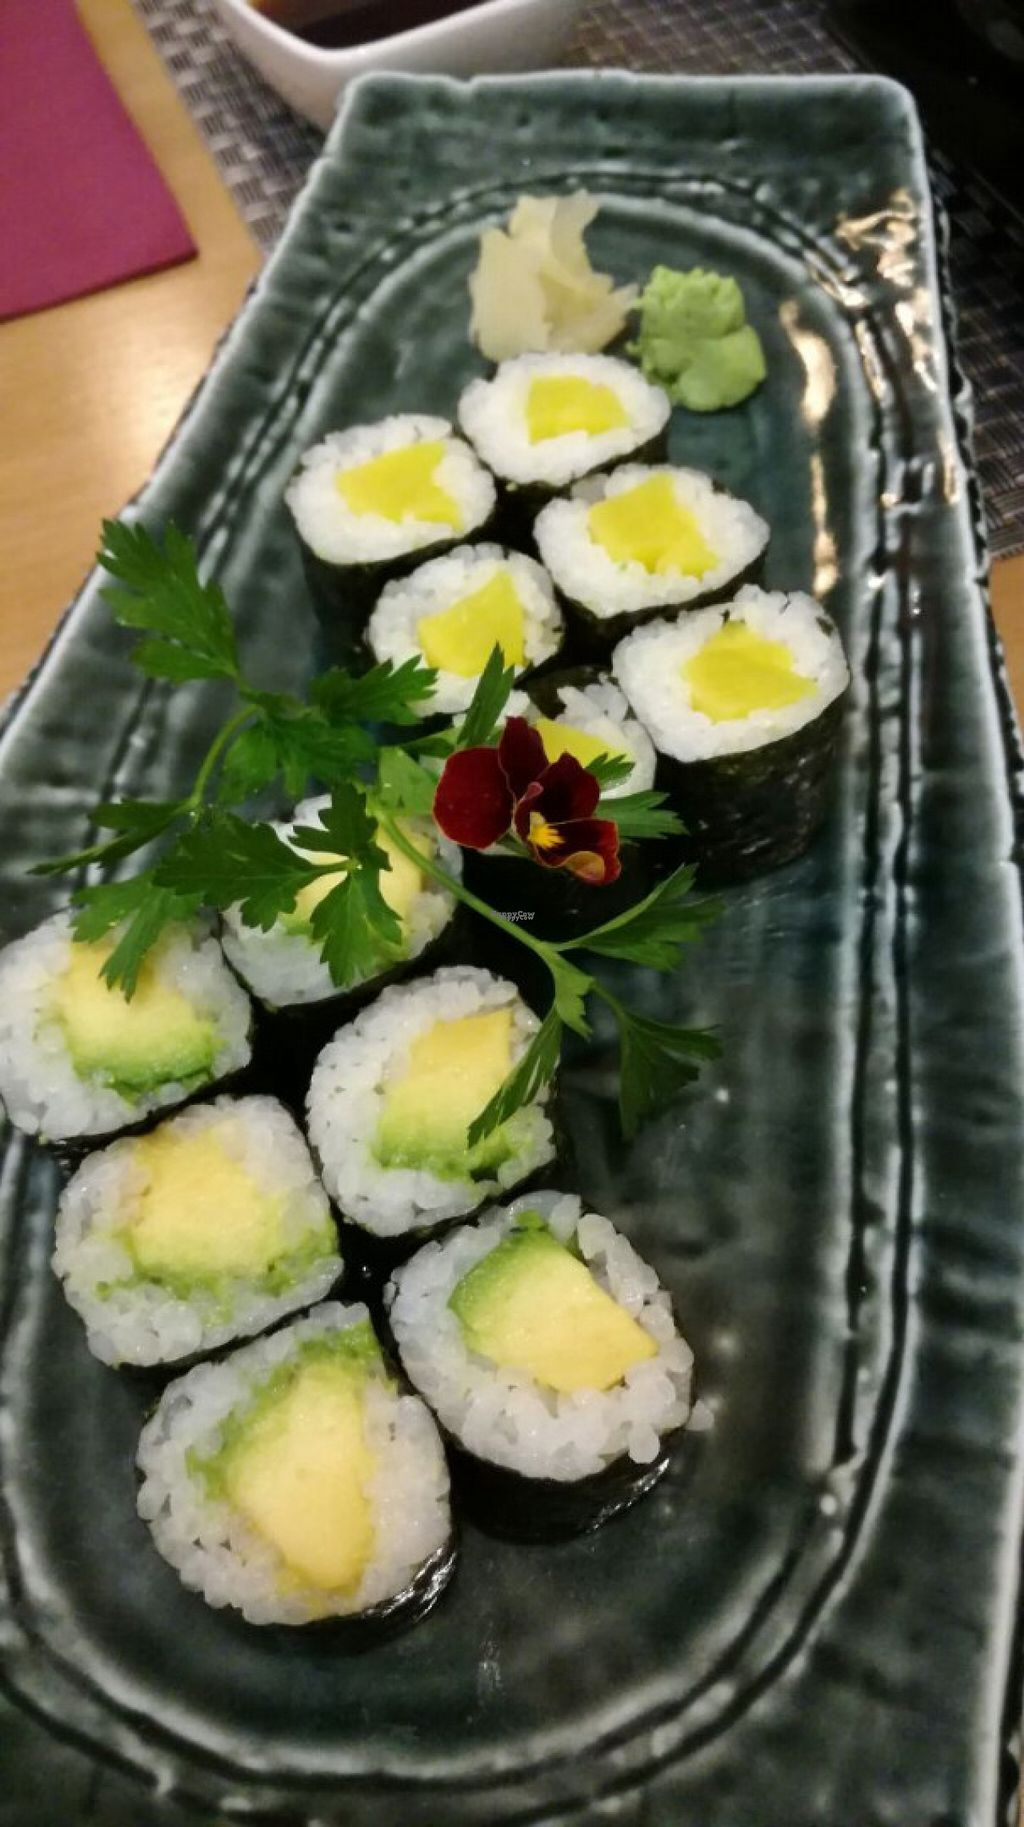 """Photo of Yamazaki Sushi  by <a href=""""/members/profile/JM73"""">JM73</a> <br/>Vegan maki sushi (cucumber and avocado) <br/> August 1, 2016  - <a href='/contact/abuse/image/76744/164110'>Report</a>"""